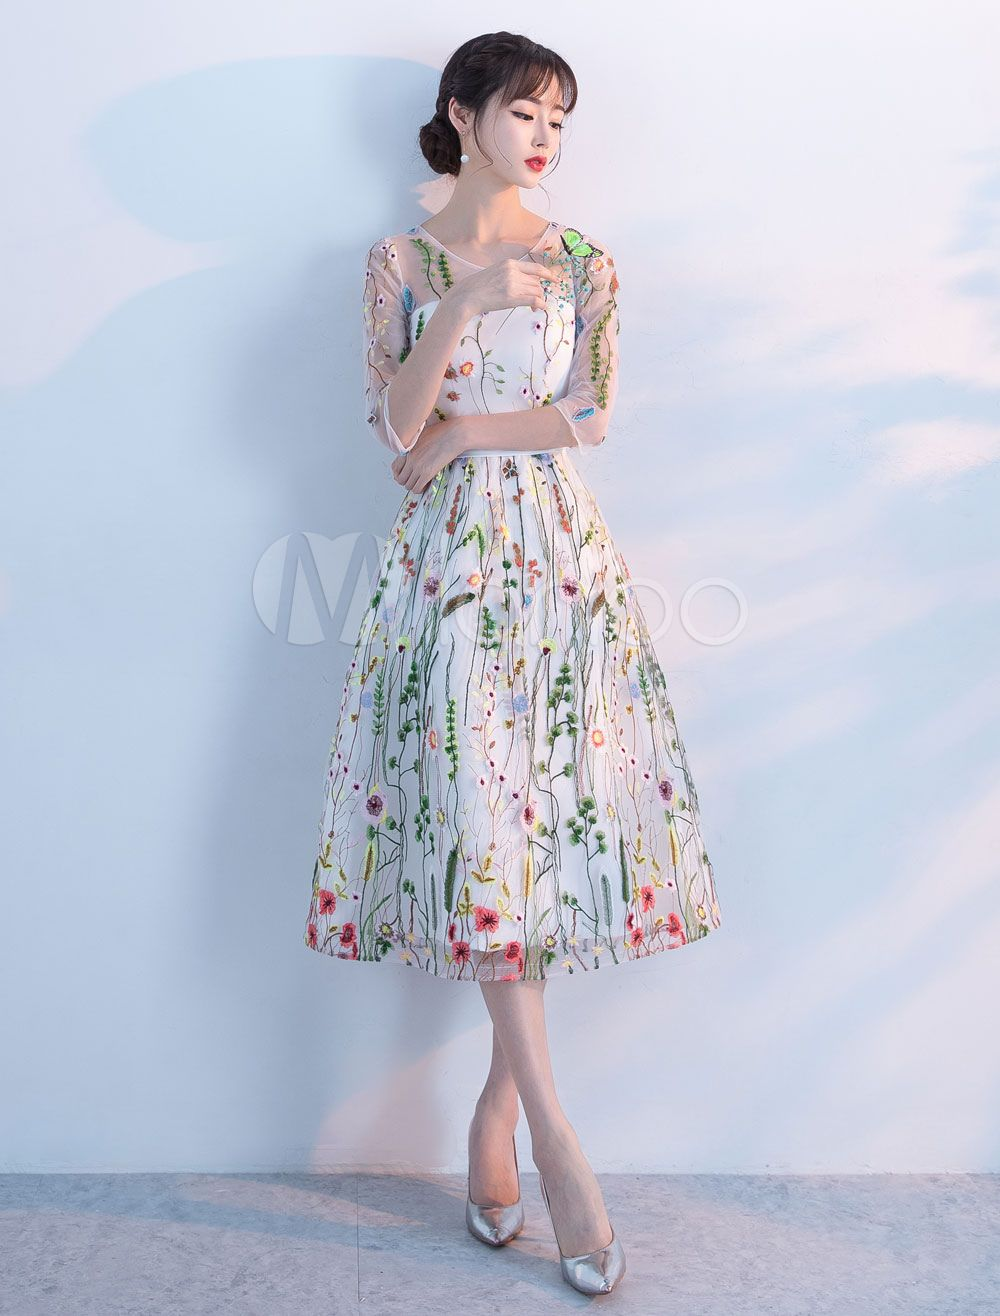 b8ef48c3bc7c2 Lace Prom Dresses 2018 Short Floral Print Cocktail Dress Illusion ...